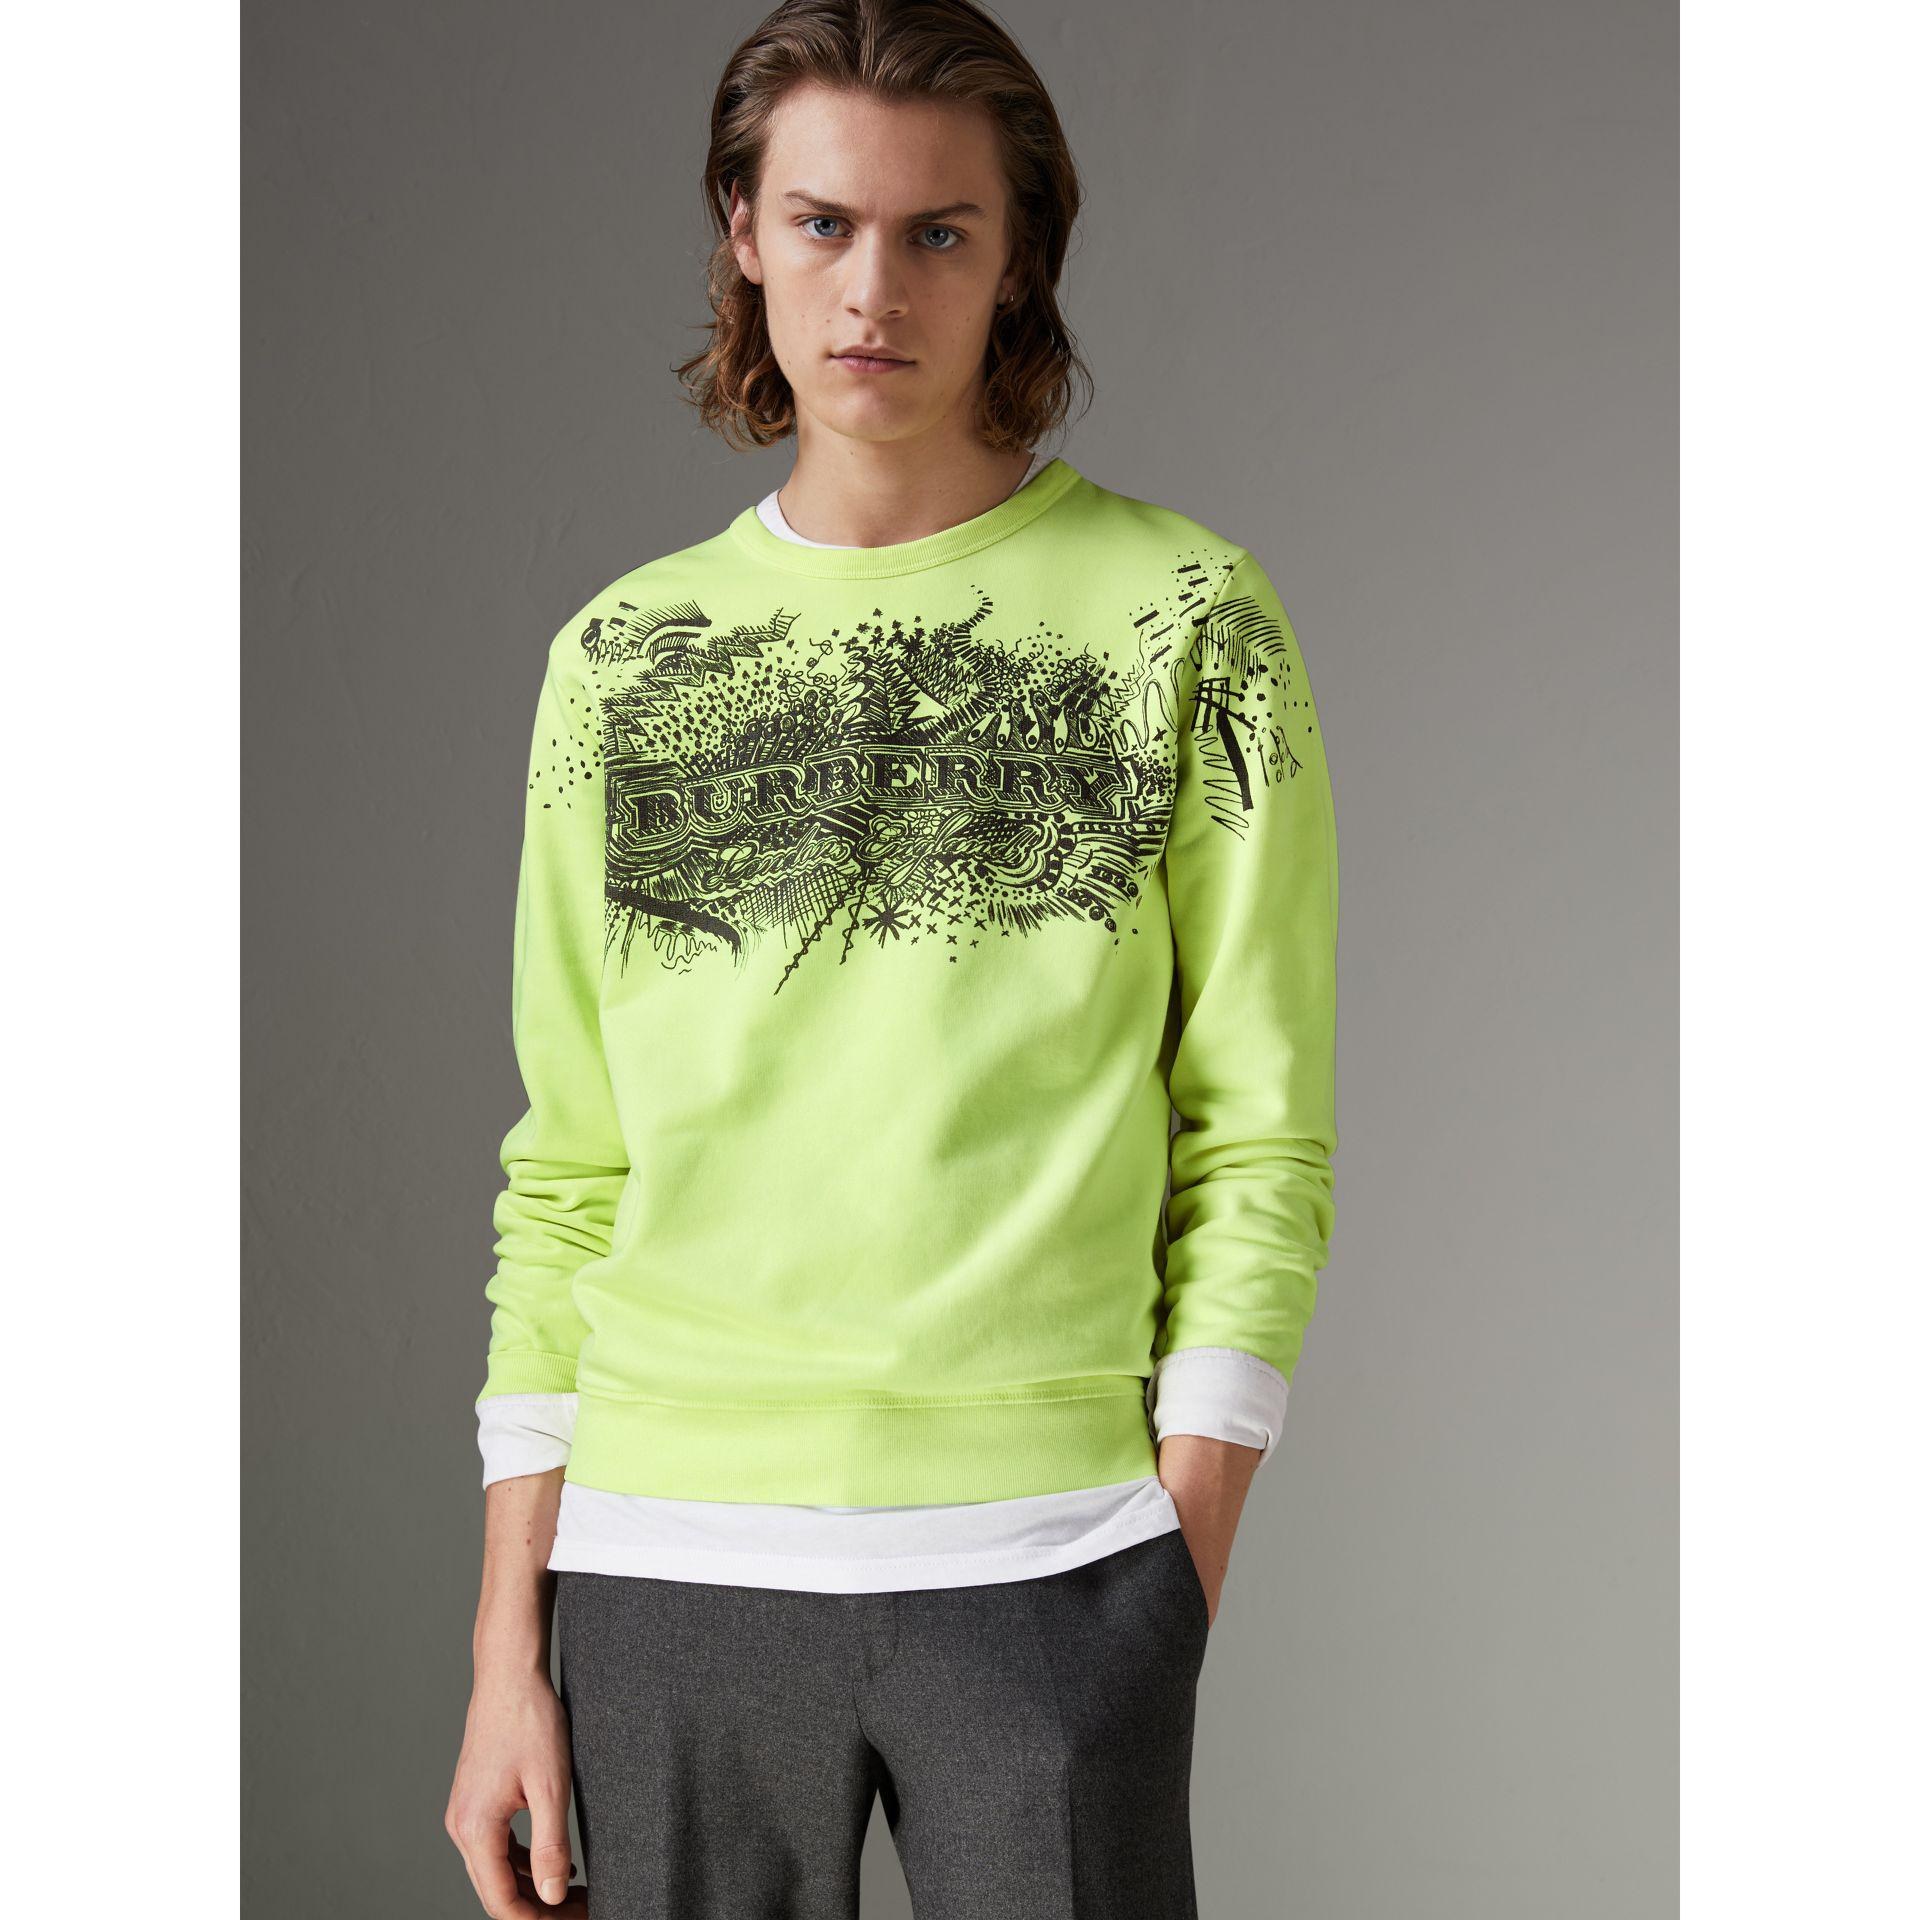 Discount Authentic Online doodle print cotton sweatshirt - Green Burberry Footlocker Pictures Online NXKayDMaE